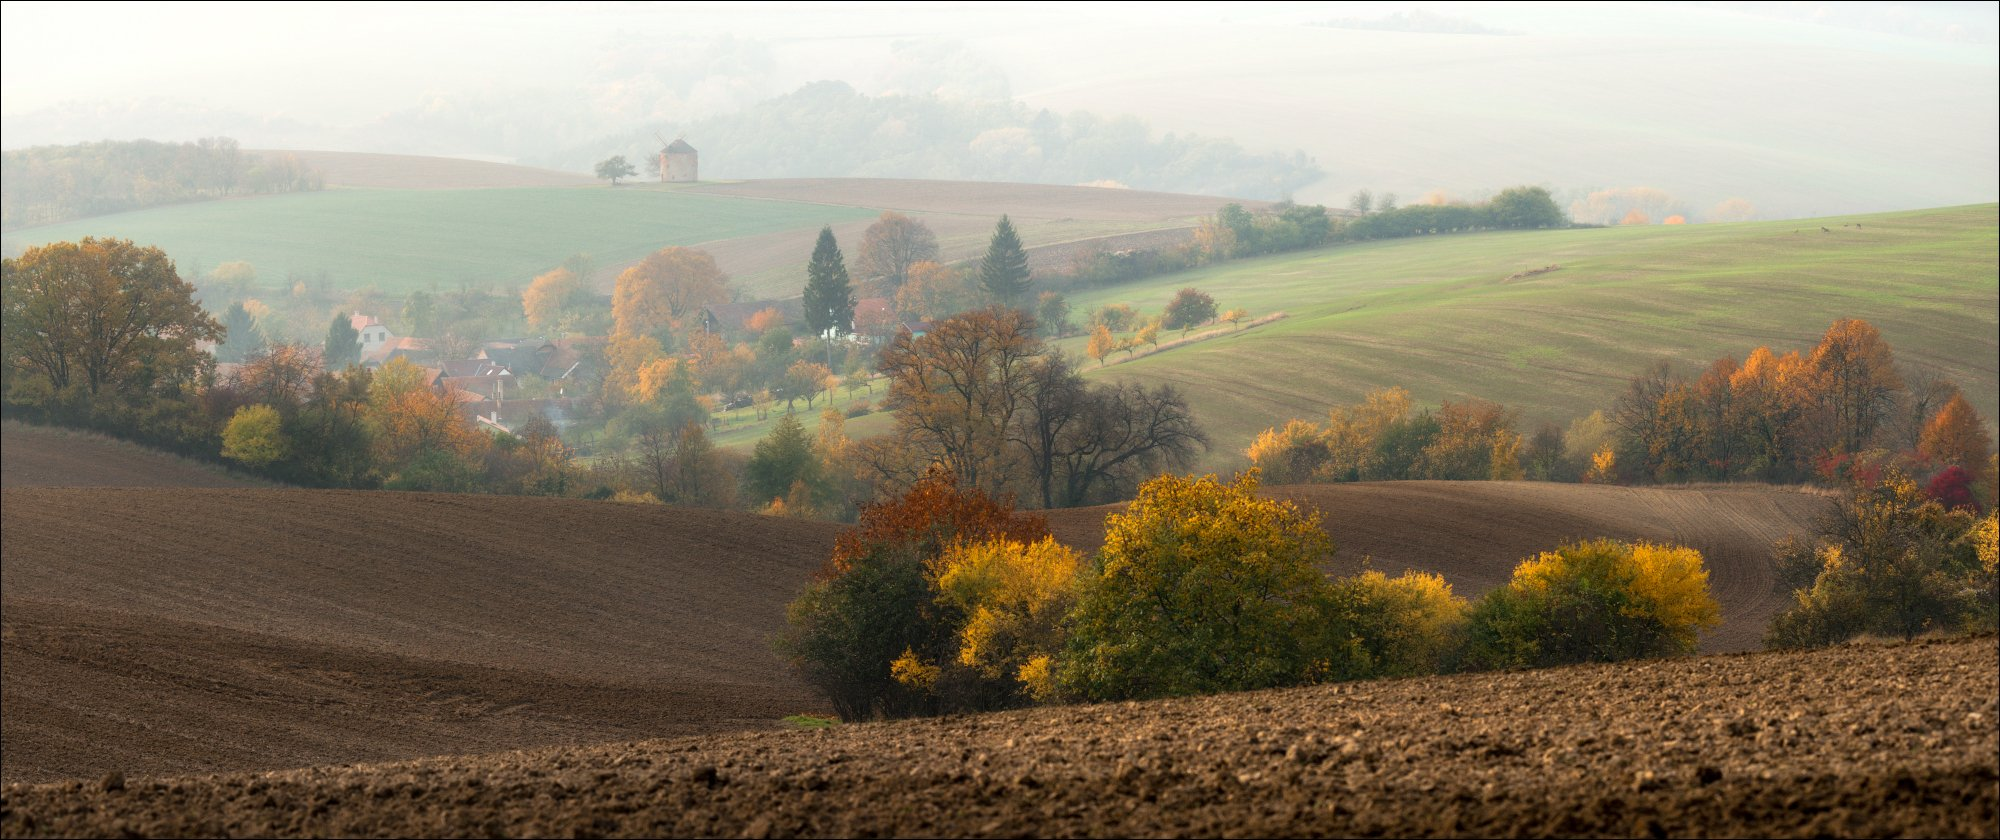 Чехия, Южная Моравия, осень панорама, утро, туман, идиллия, rural, South Moravian, Morava, autumn, мельница,, Влад Соколовский